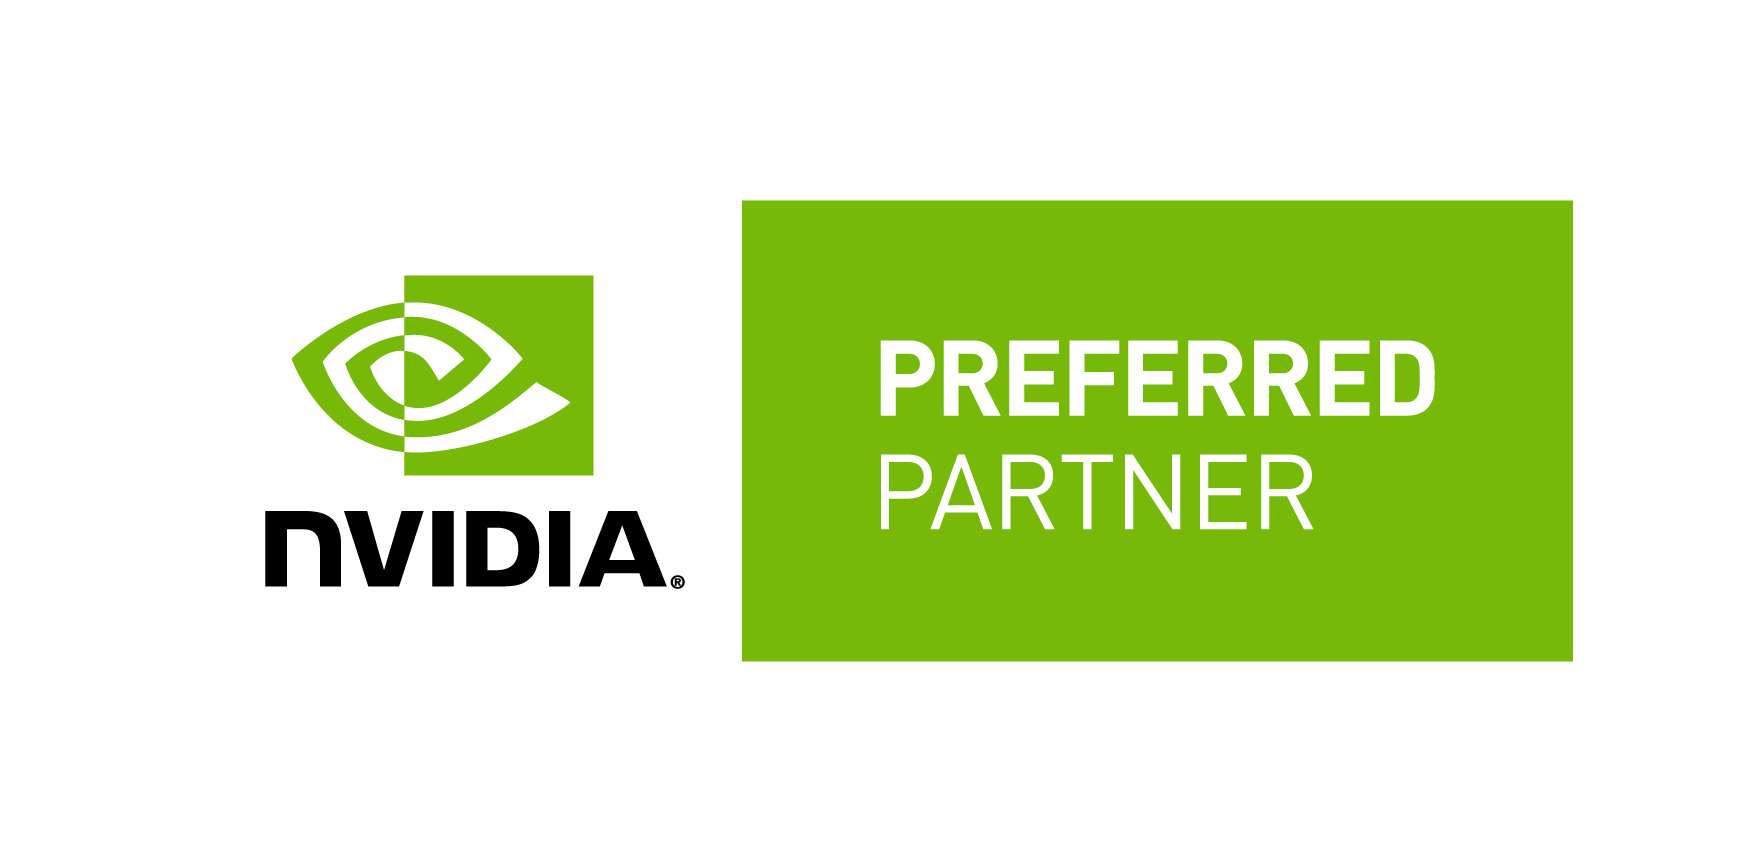 NVIDIA_PreferredPartner